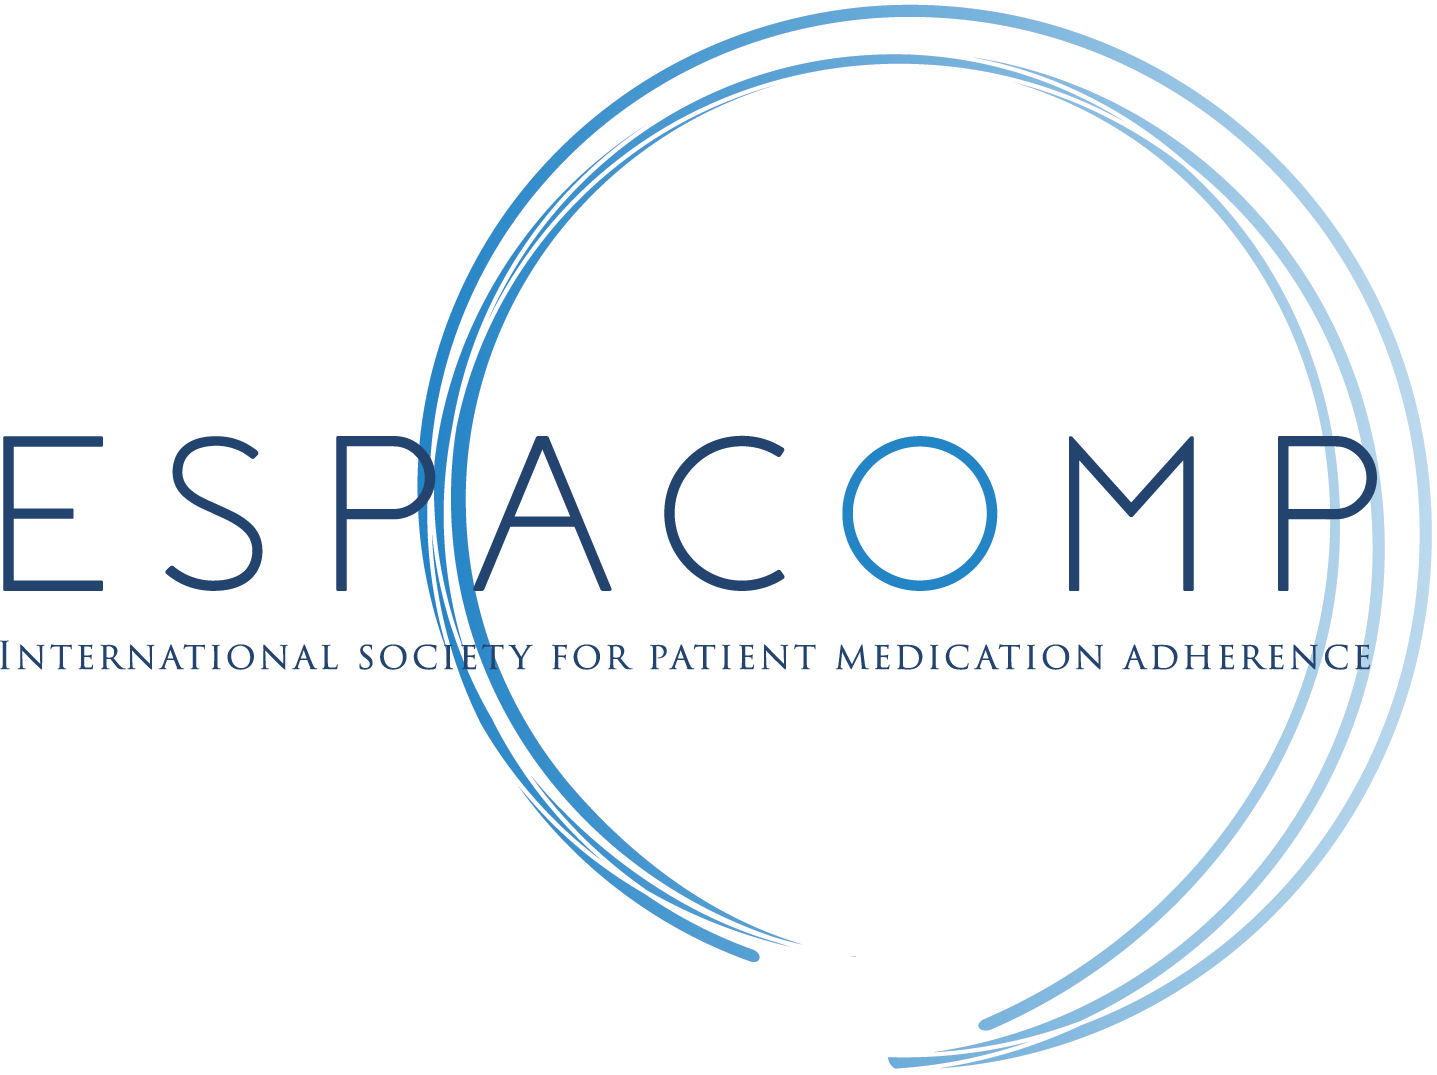 ESPACOMP will organize its 25th annual conference